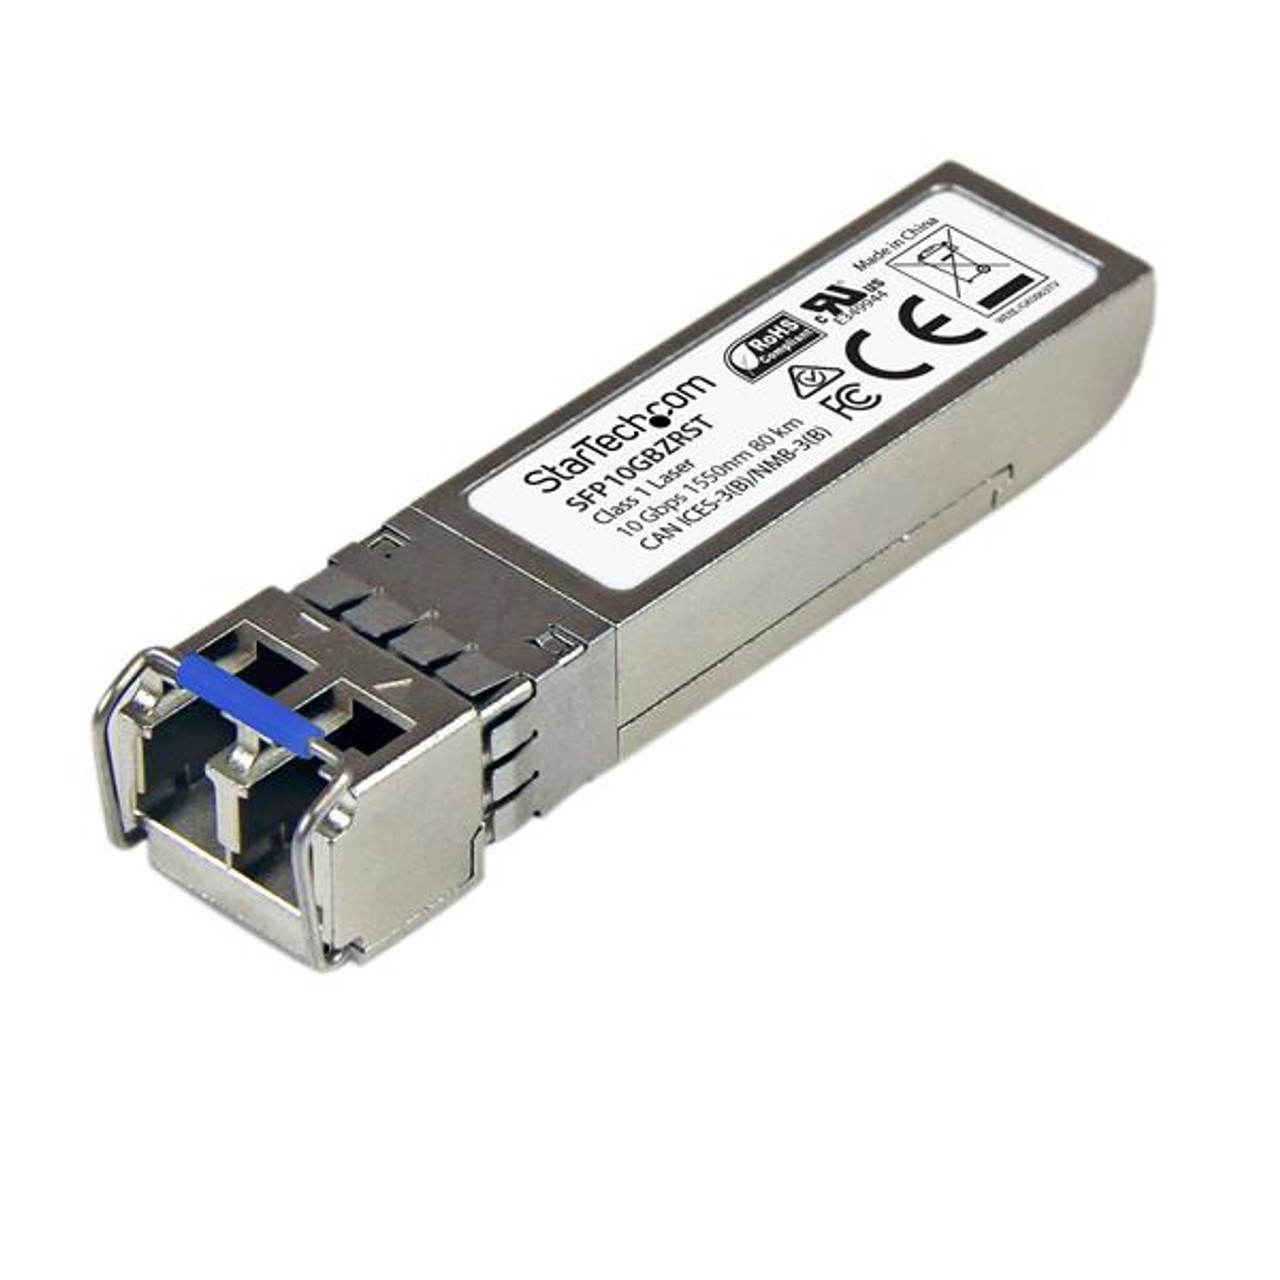 Image for StarTech 10GBase-ZR SFP+ - MSA Compliant - 10G SFP+ - SM 80km/49.7mi CX Computer Superstore